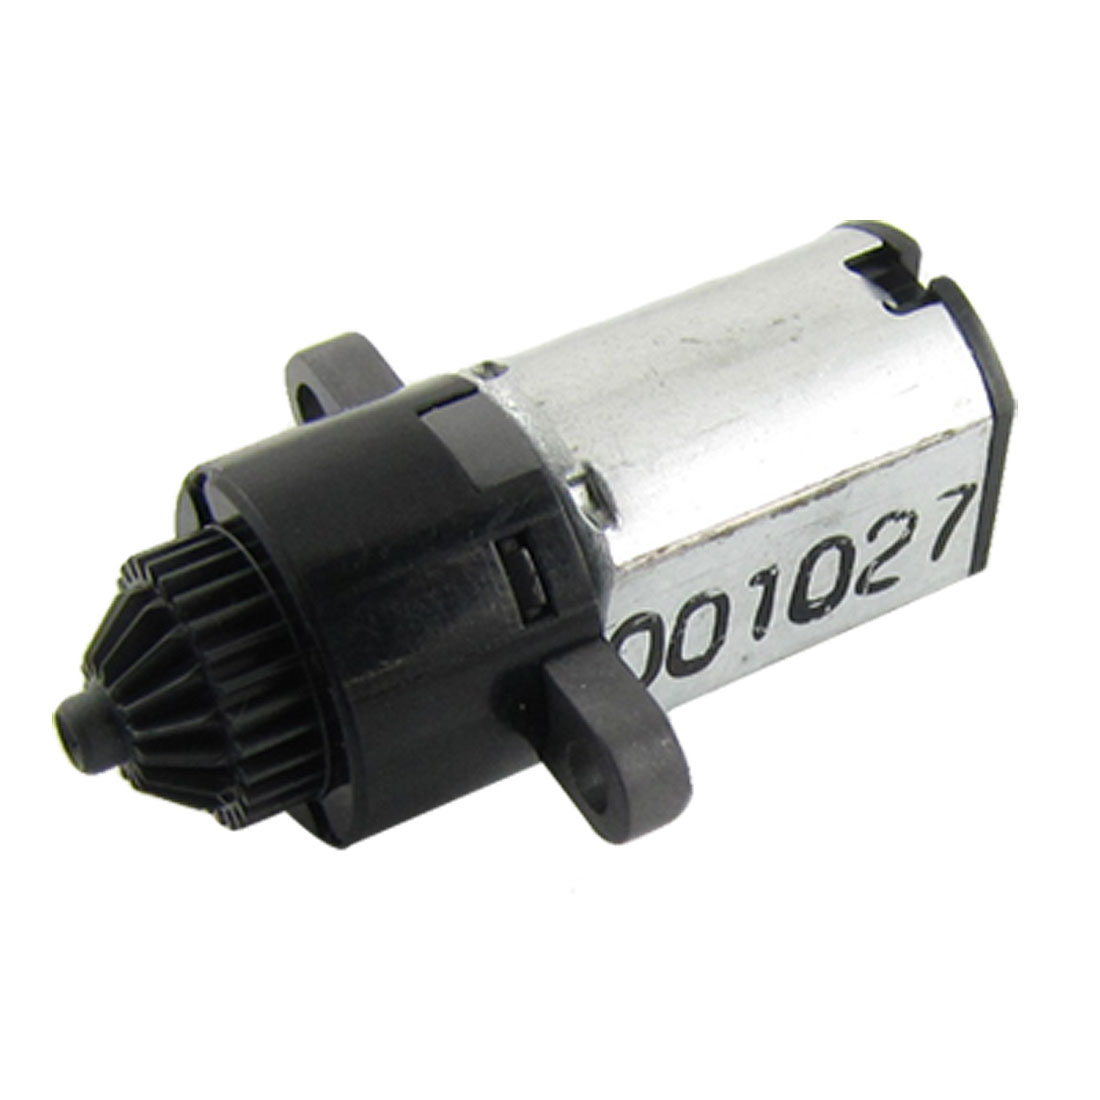 DC 3V 130rpm Black Bevel Gear Toy Micro Electric Motor